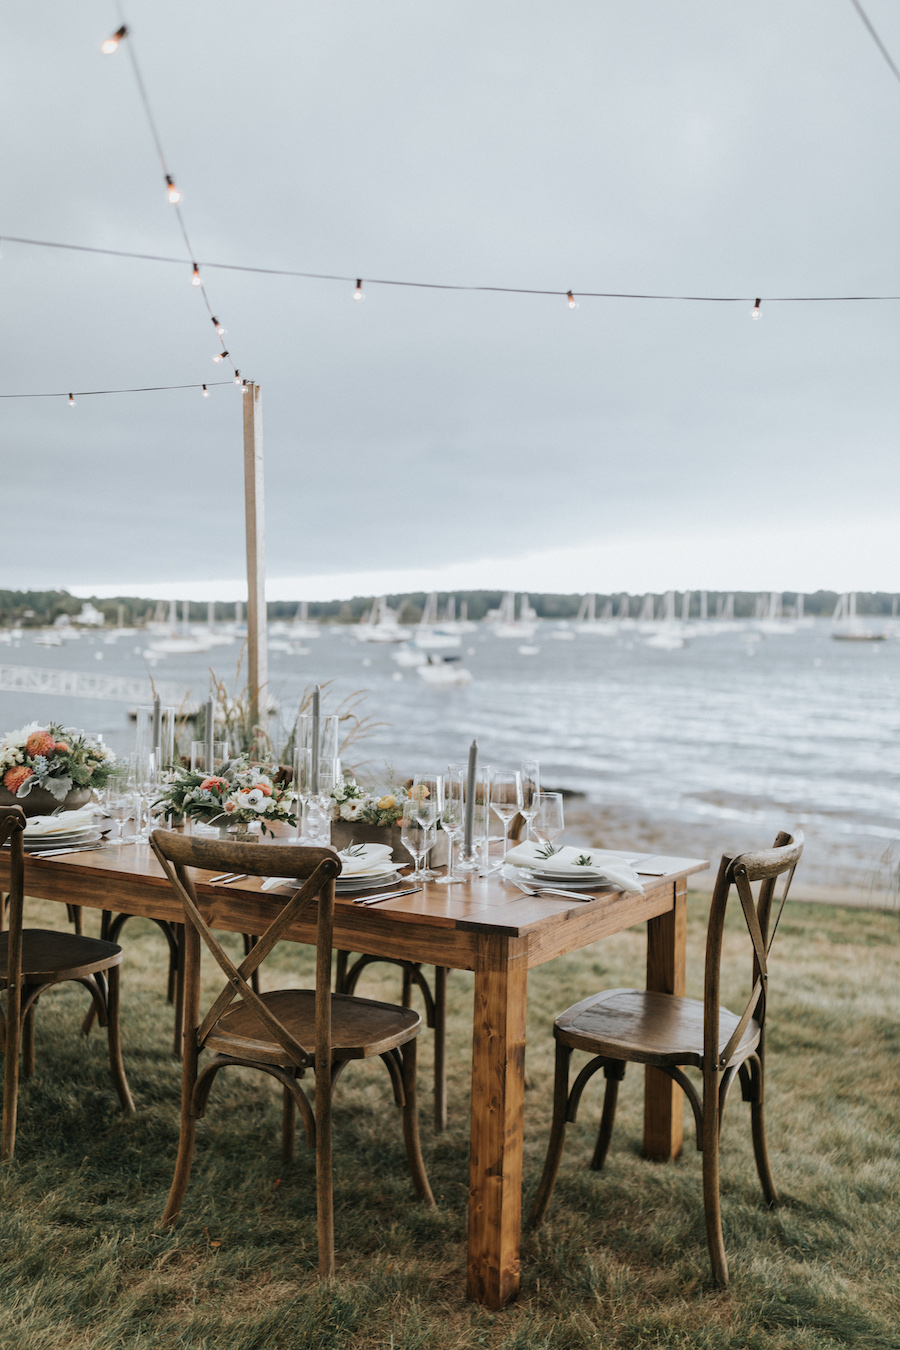 Wooden farm tables set with china and flowers beneath string lighting on the coast.